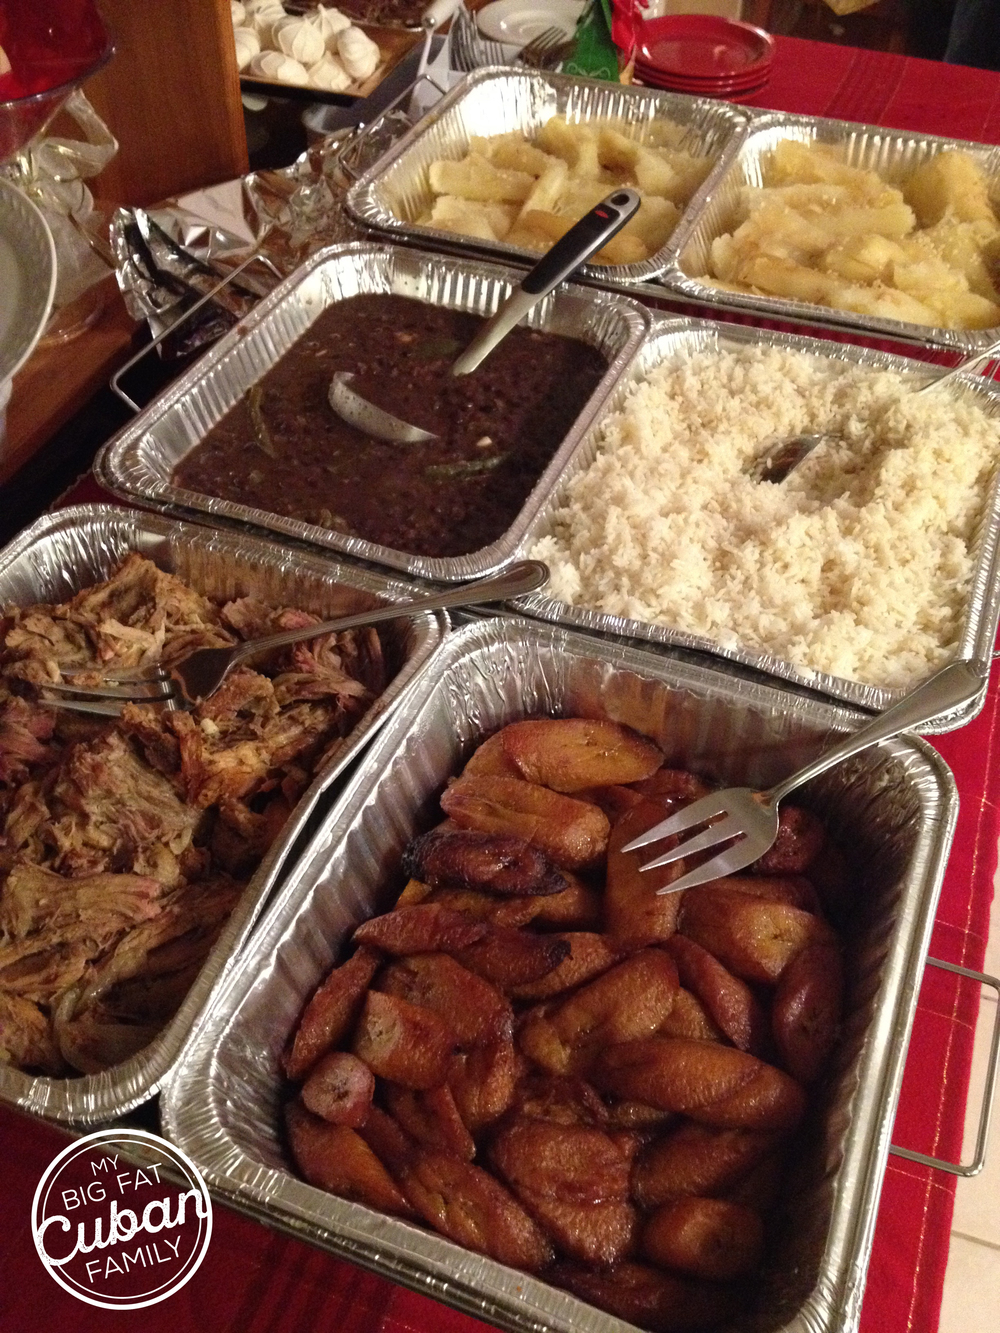 My Big Fat Cuban Family authentic Cuban Pork Roast Recipe